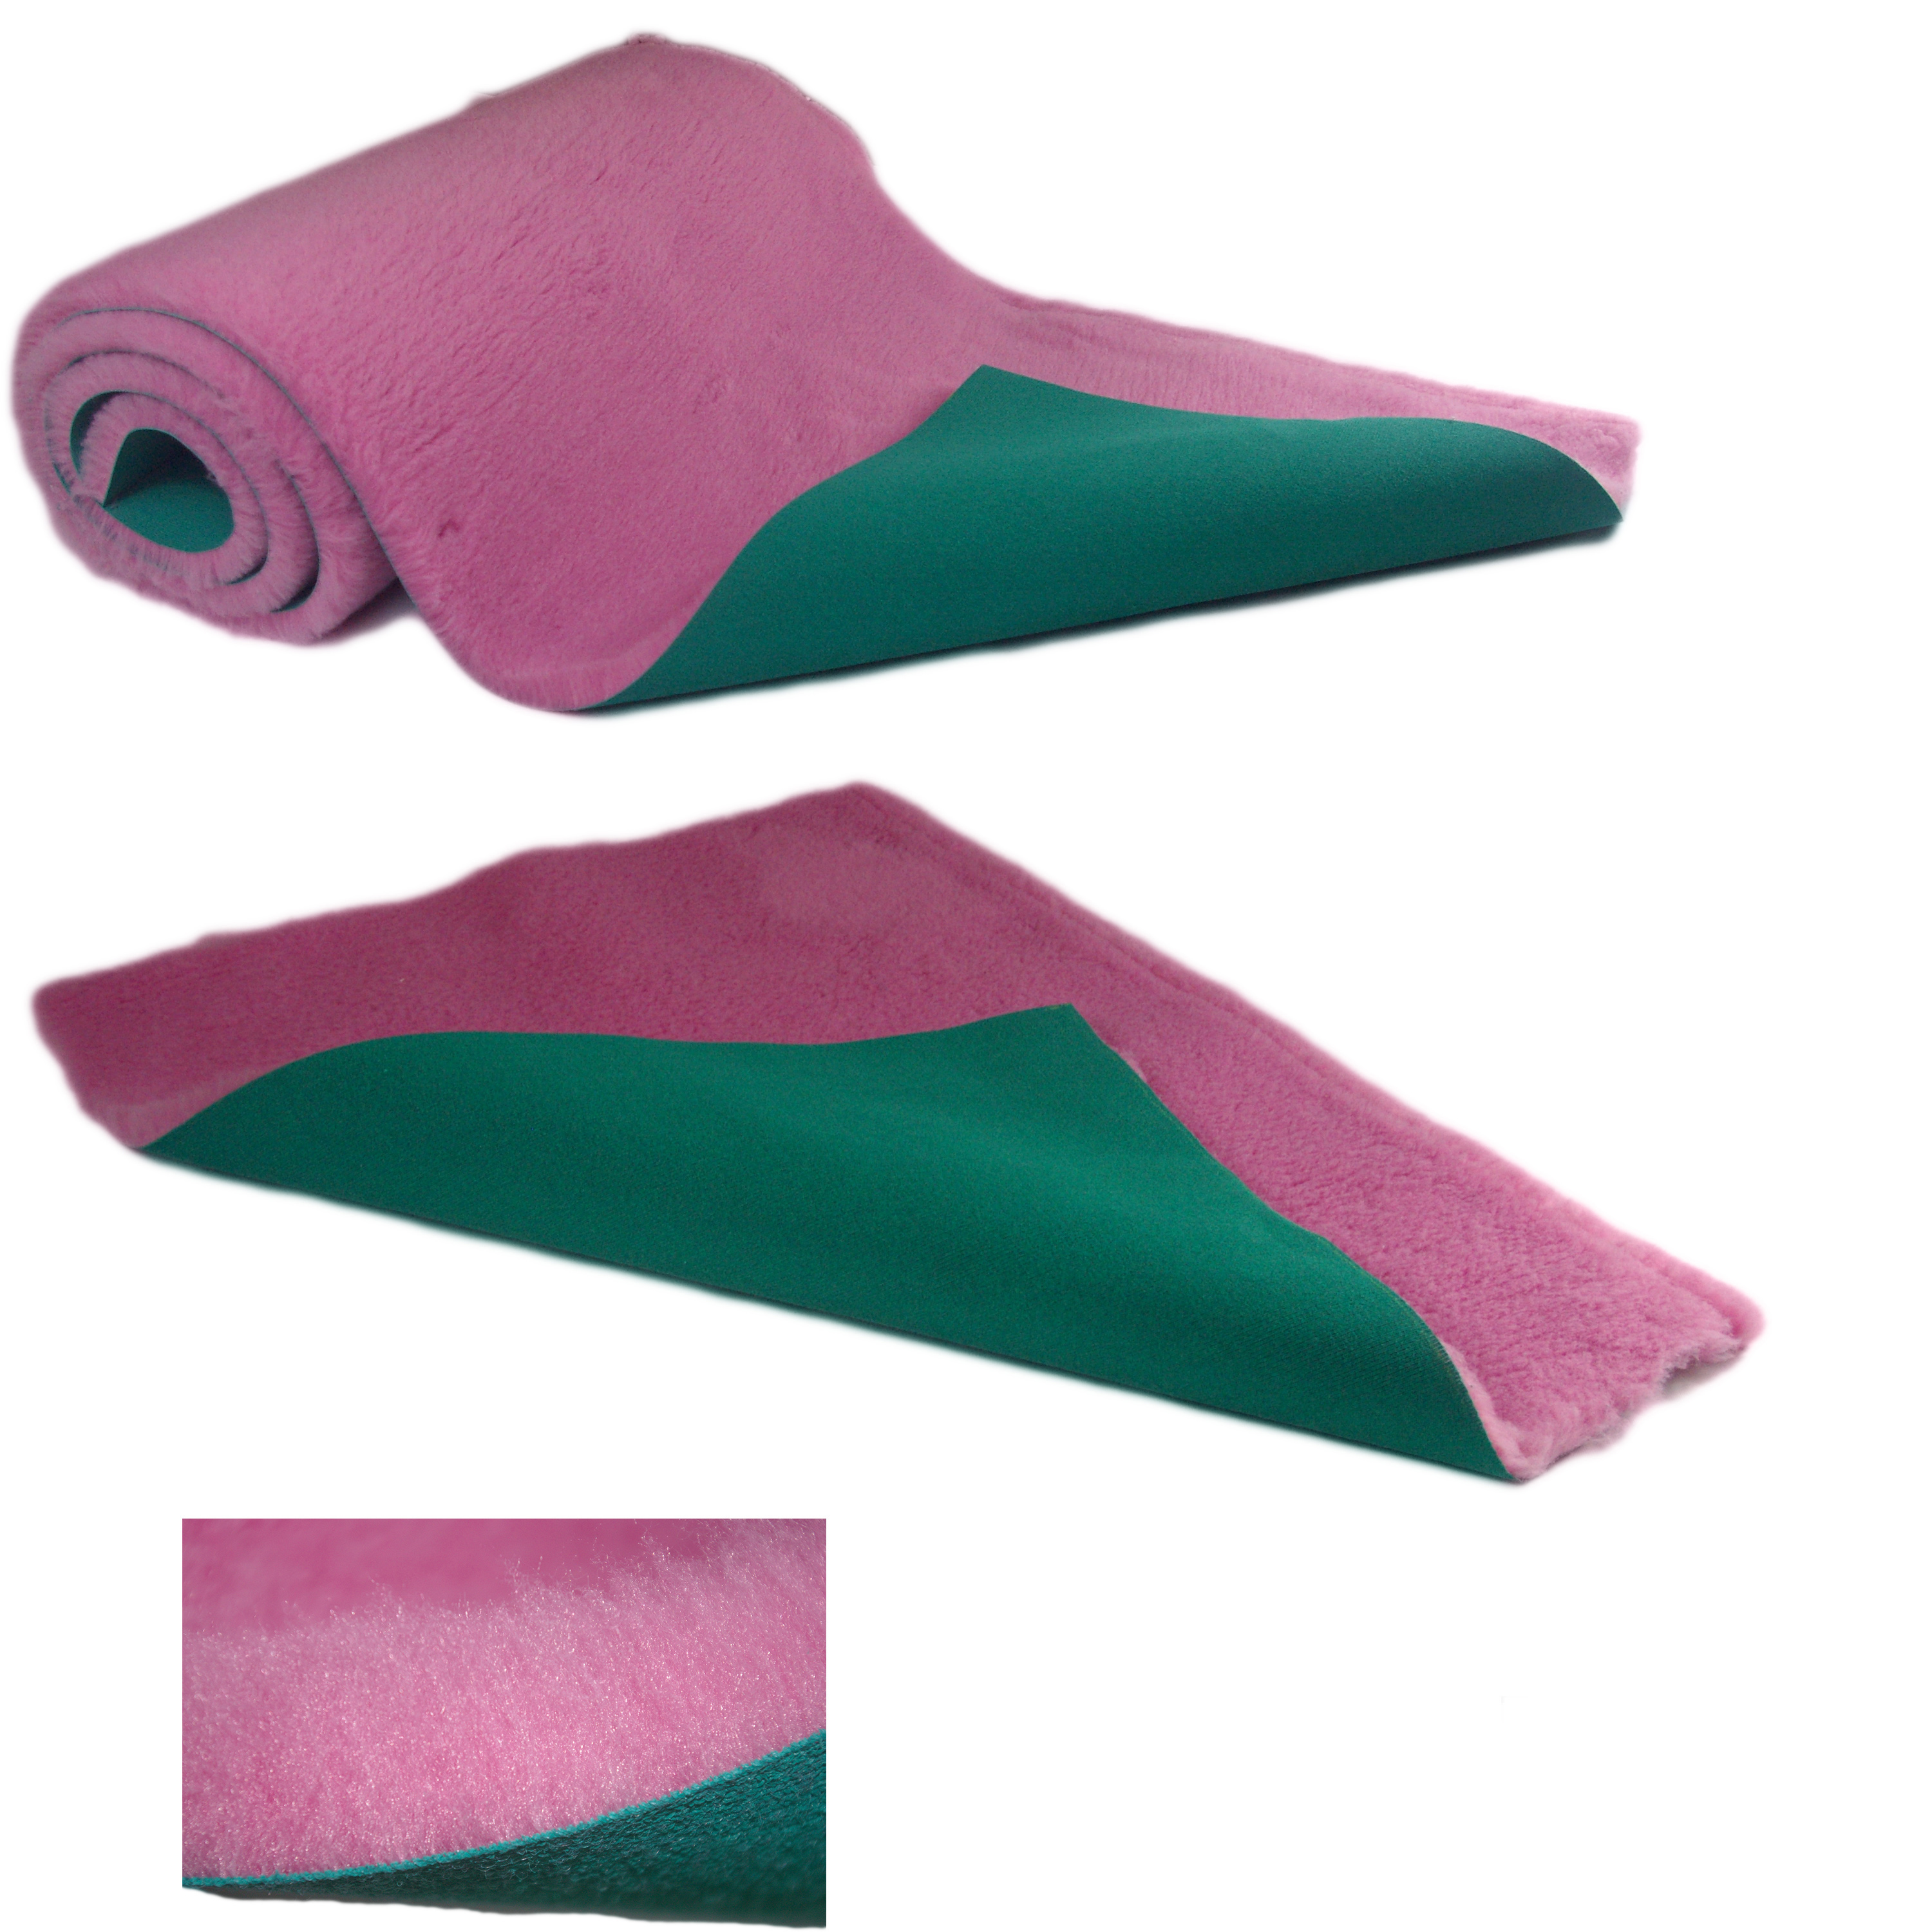 Traditional Pink Vet Bedding ROLL WHELPING FLEECE DOG PUPPY PRO BED